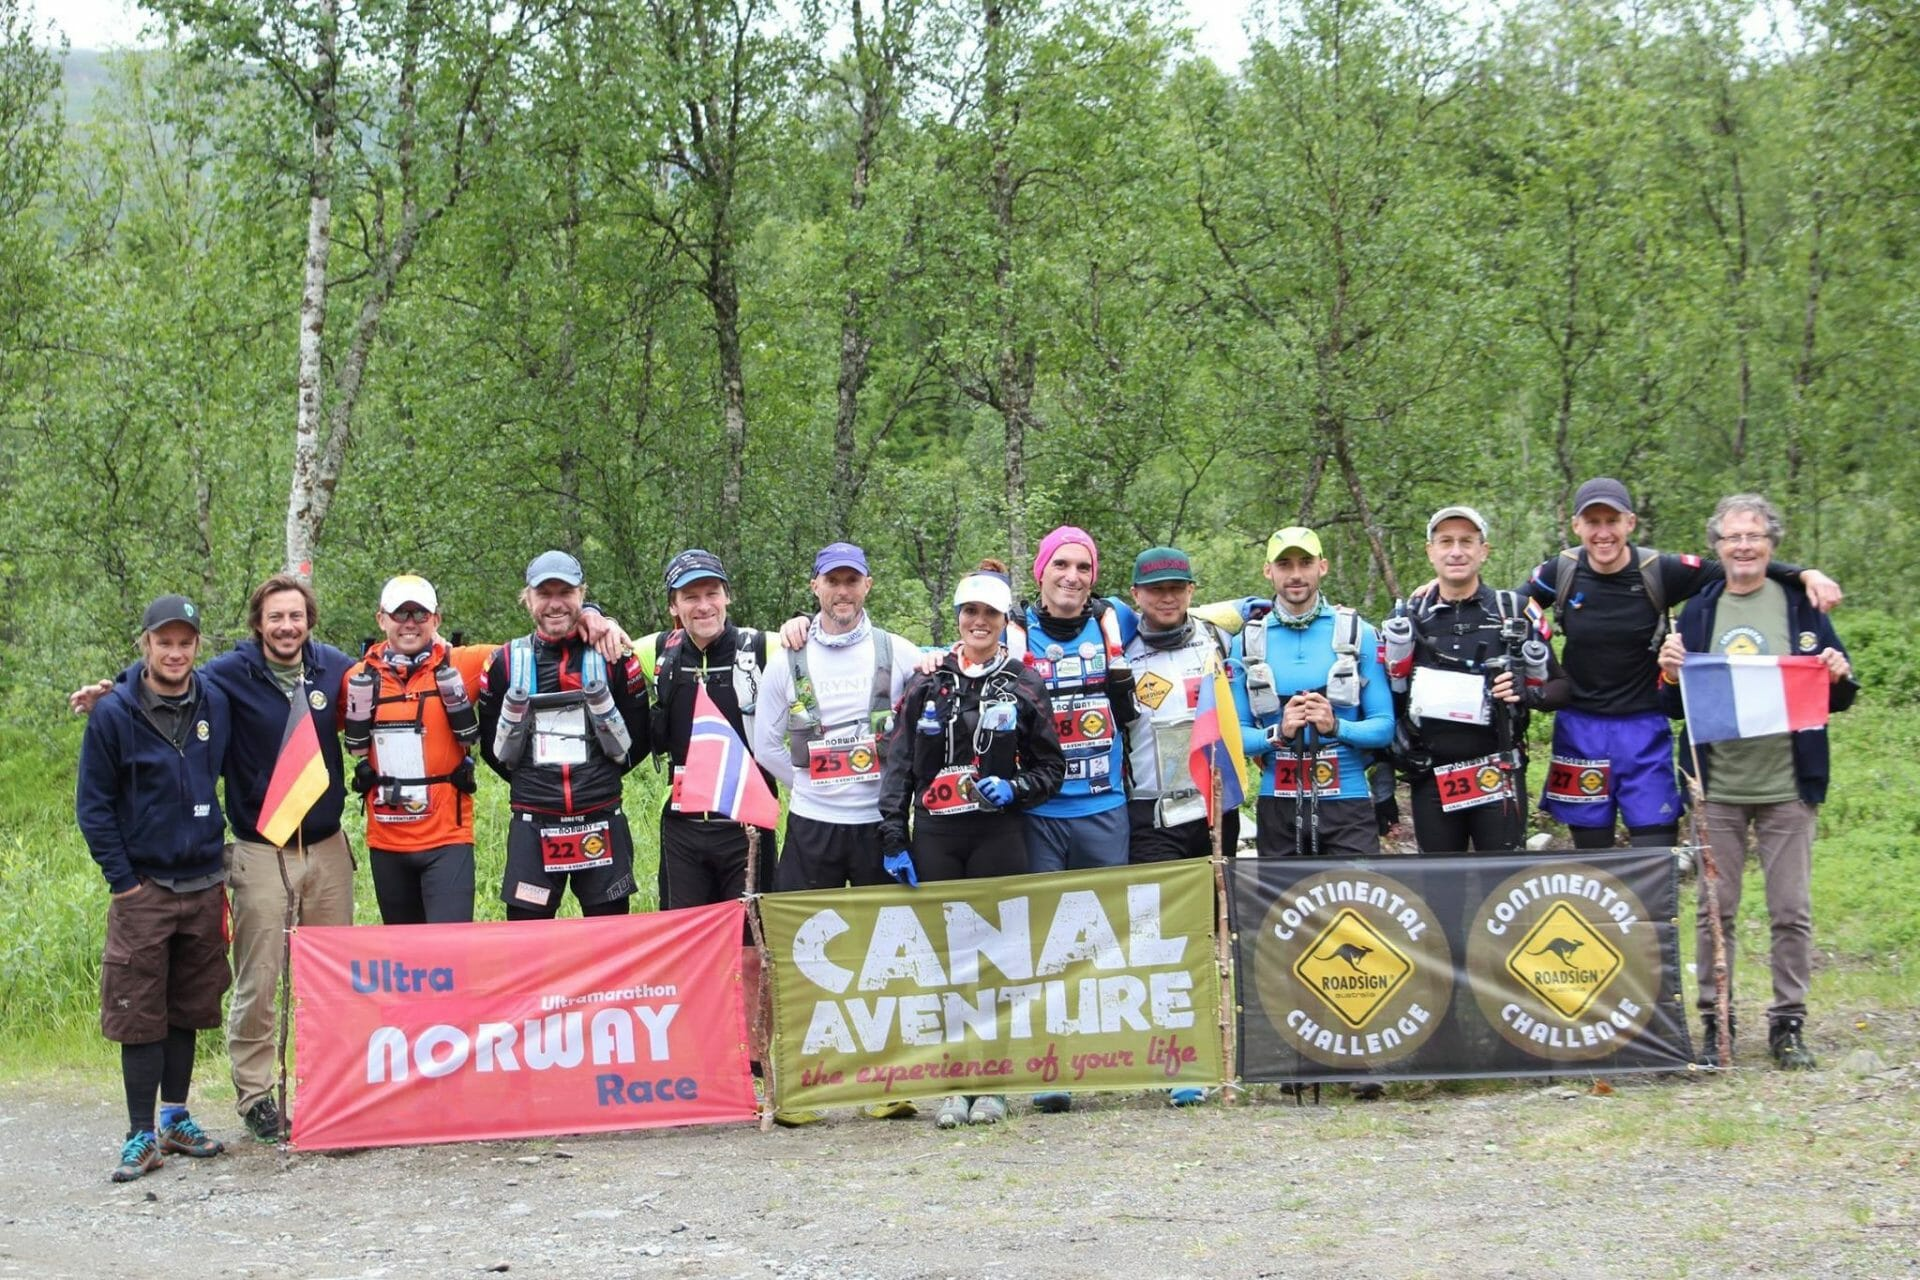 Canal-Aventure :: Ultra Norway Race‬